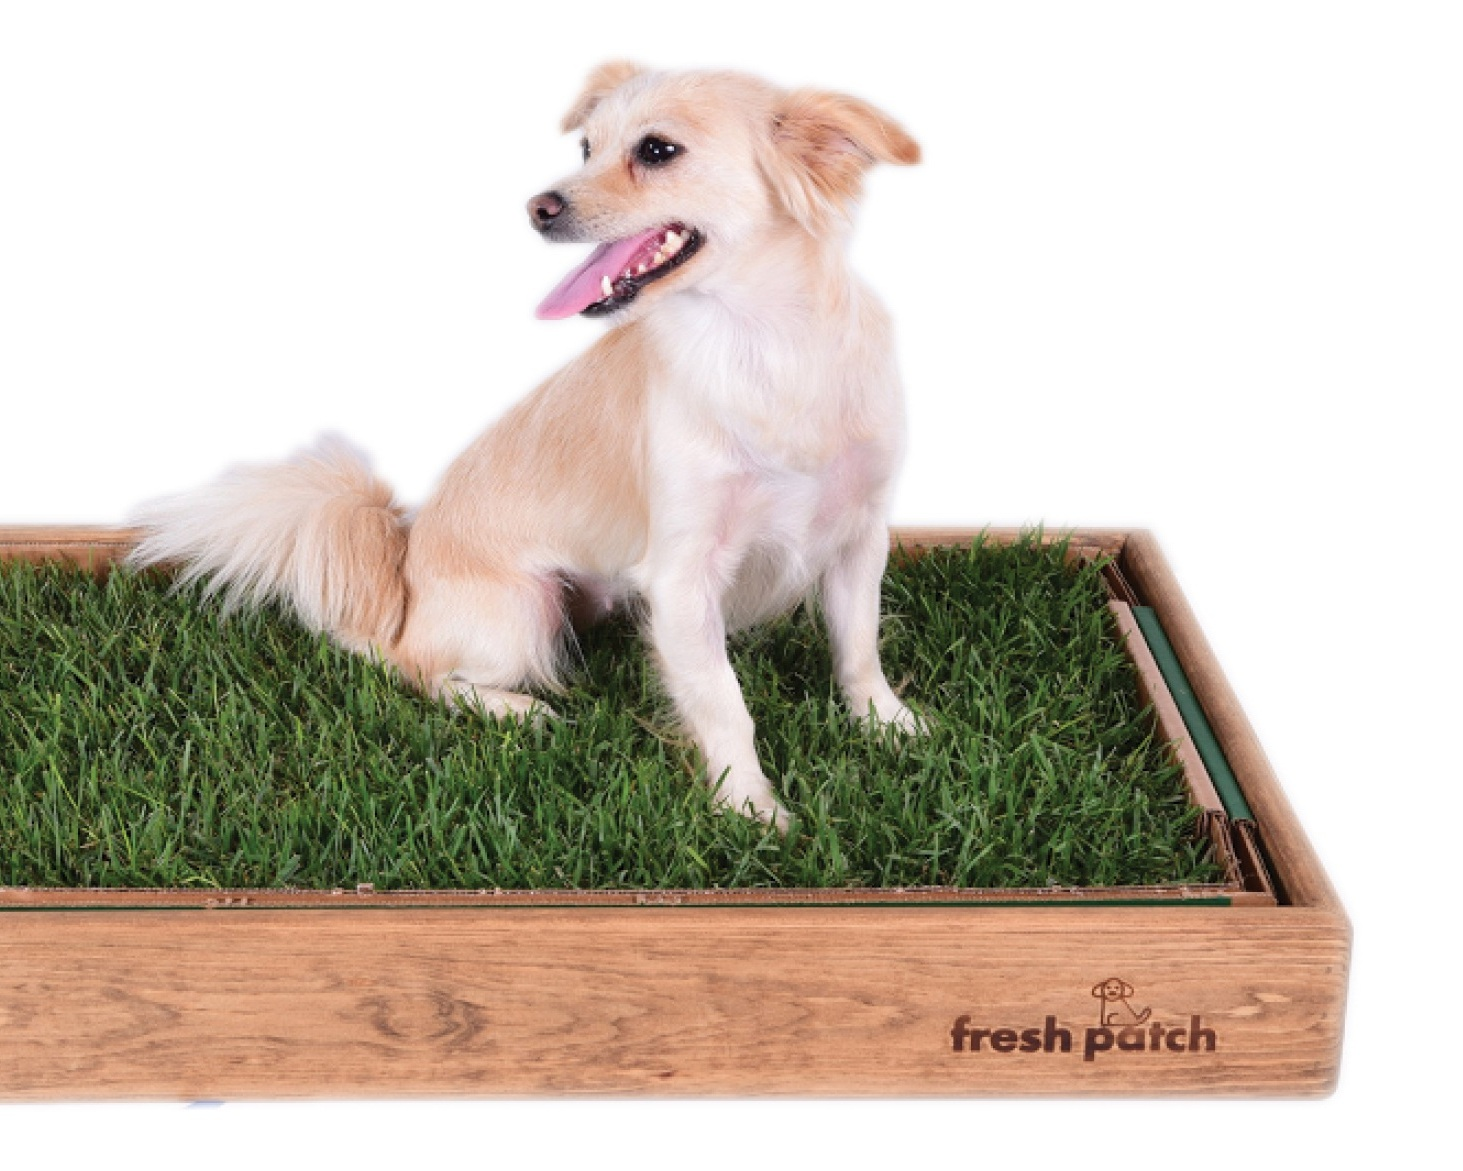 Fresh Patch - Fresh patch is ideal for dogs with yard-less homes or potty training puppies. The all-natural living grass pad absorbs liquids and neutralizes odors. The Fresh Patch is the perfect alternative to wasteful, non-biodegradable plastic potty pads.